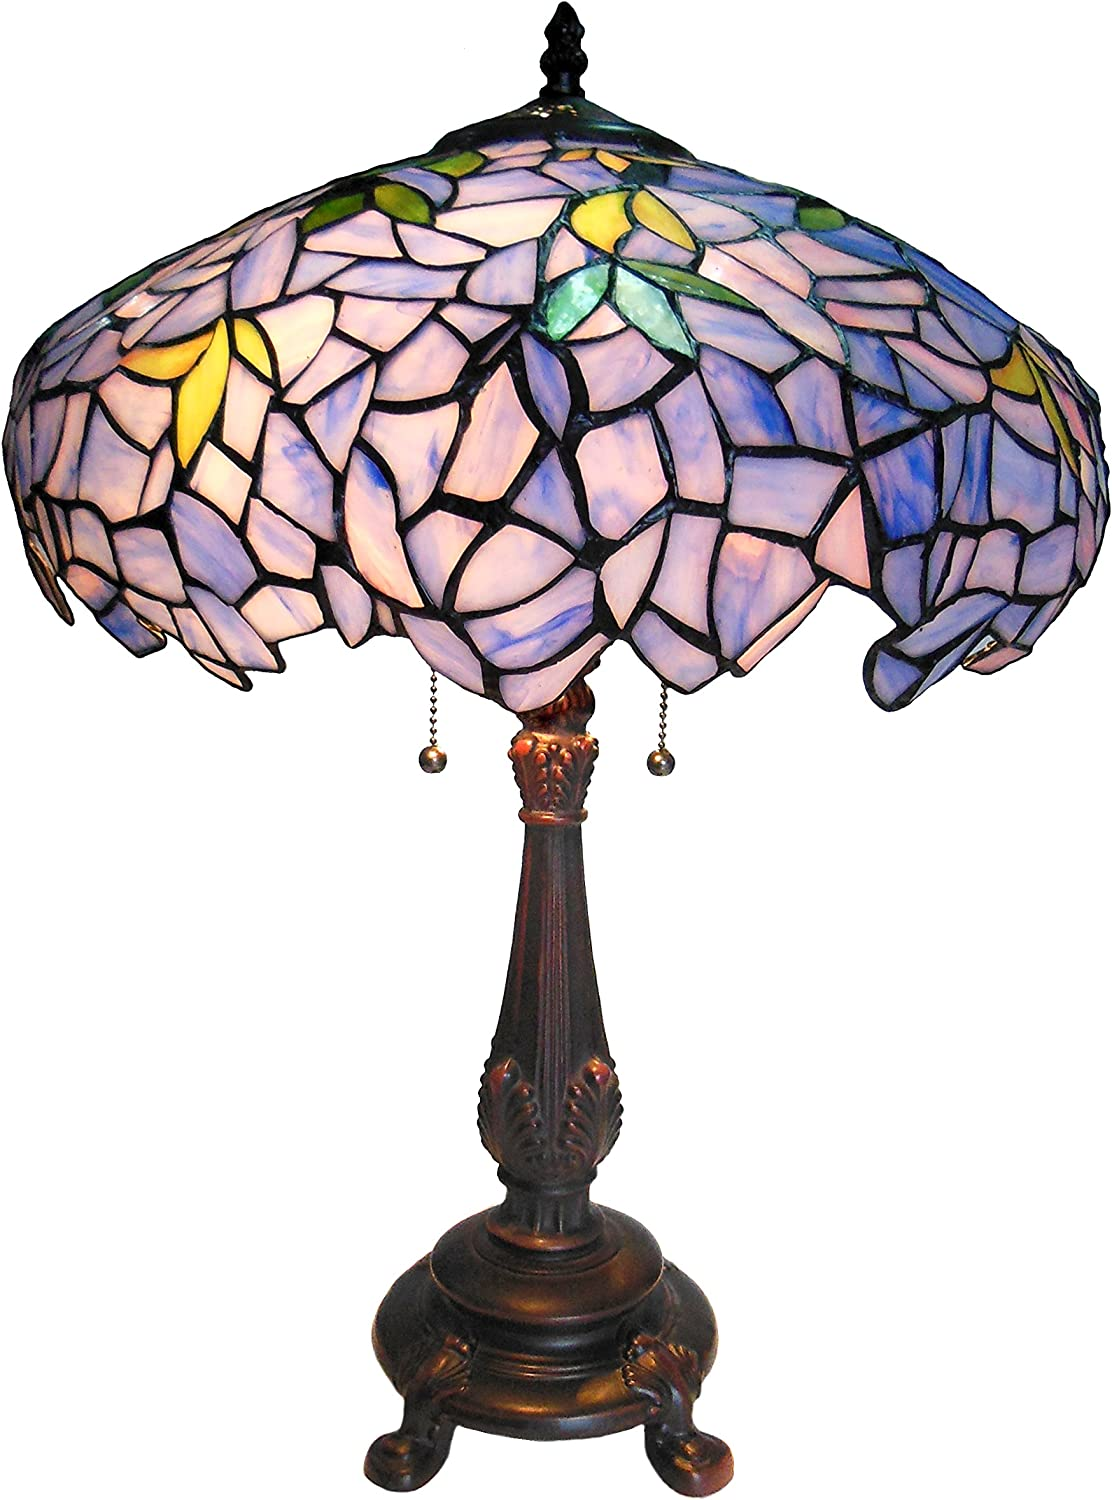 "Chloe Lighting CH16828P-TL2 Tiffany-Style Wisteria 2-Light Table Lamp with Shade, 24 x 16 x 16"", Bronze"